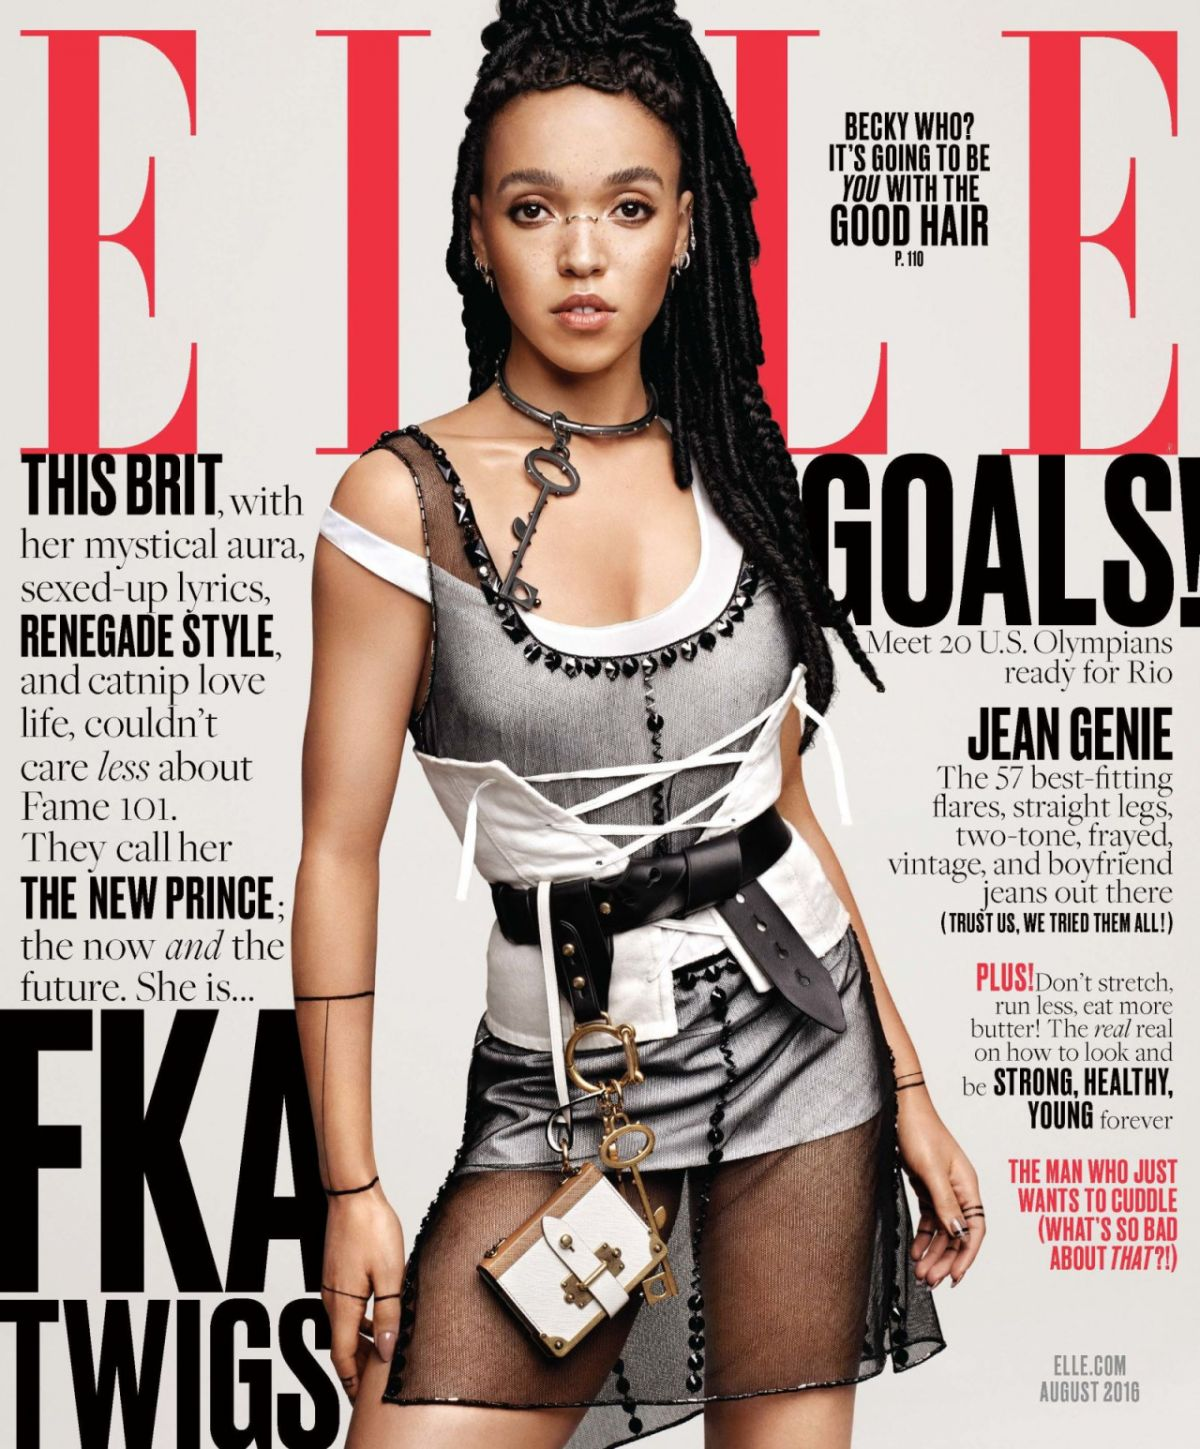 FKA TWIGS in Elle Magazine, August 2016 Issue